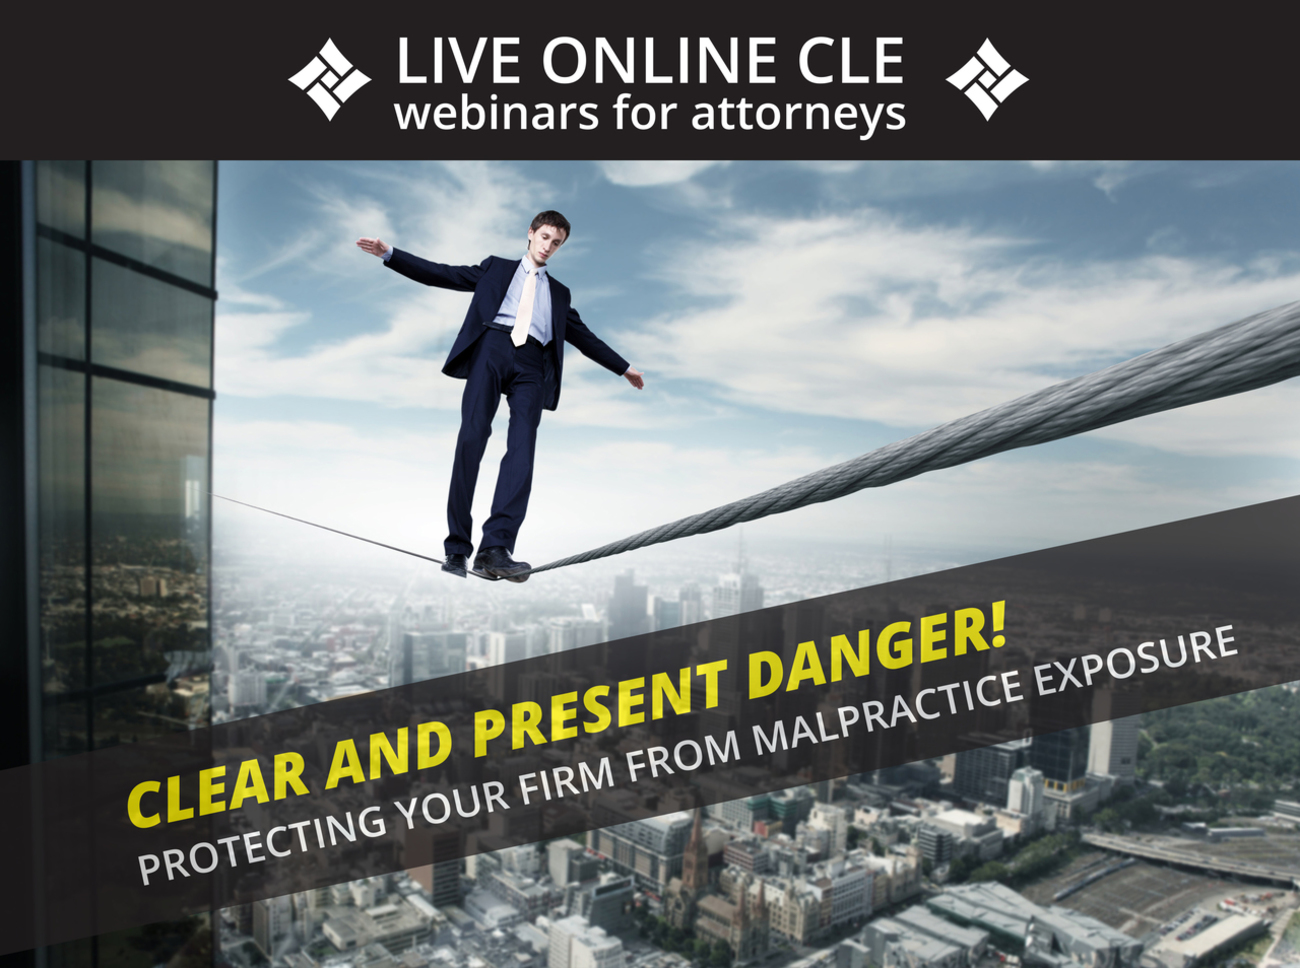 Live Online CLE Webinar for Attorneys-Clear & Present Danger! Protecting your firm from Malpractice Exposure